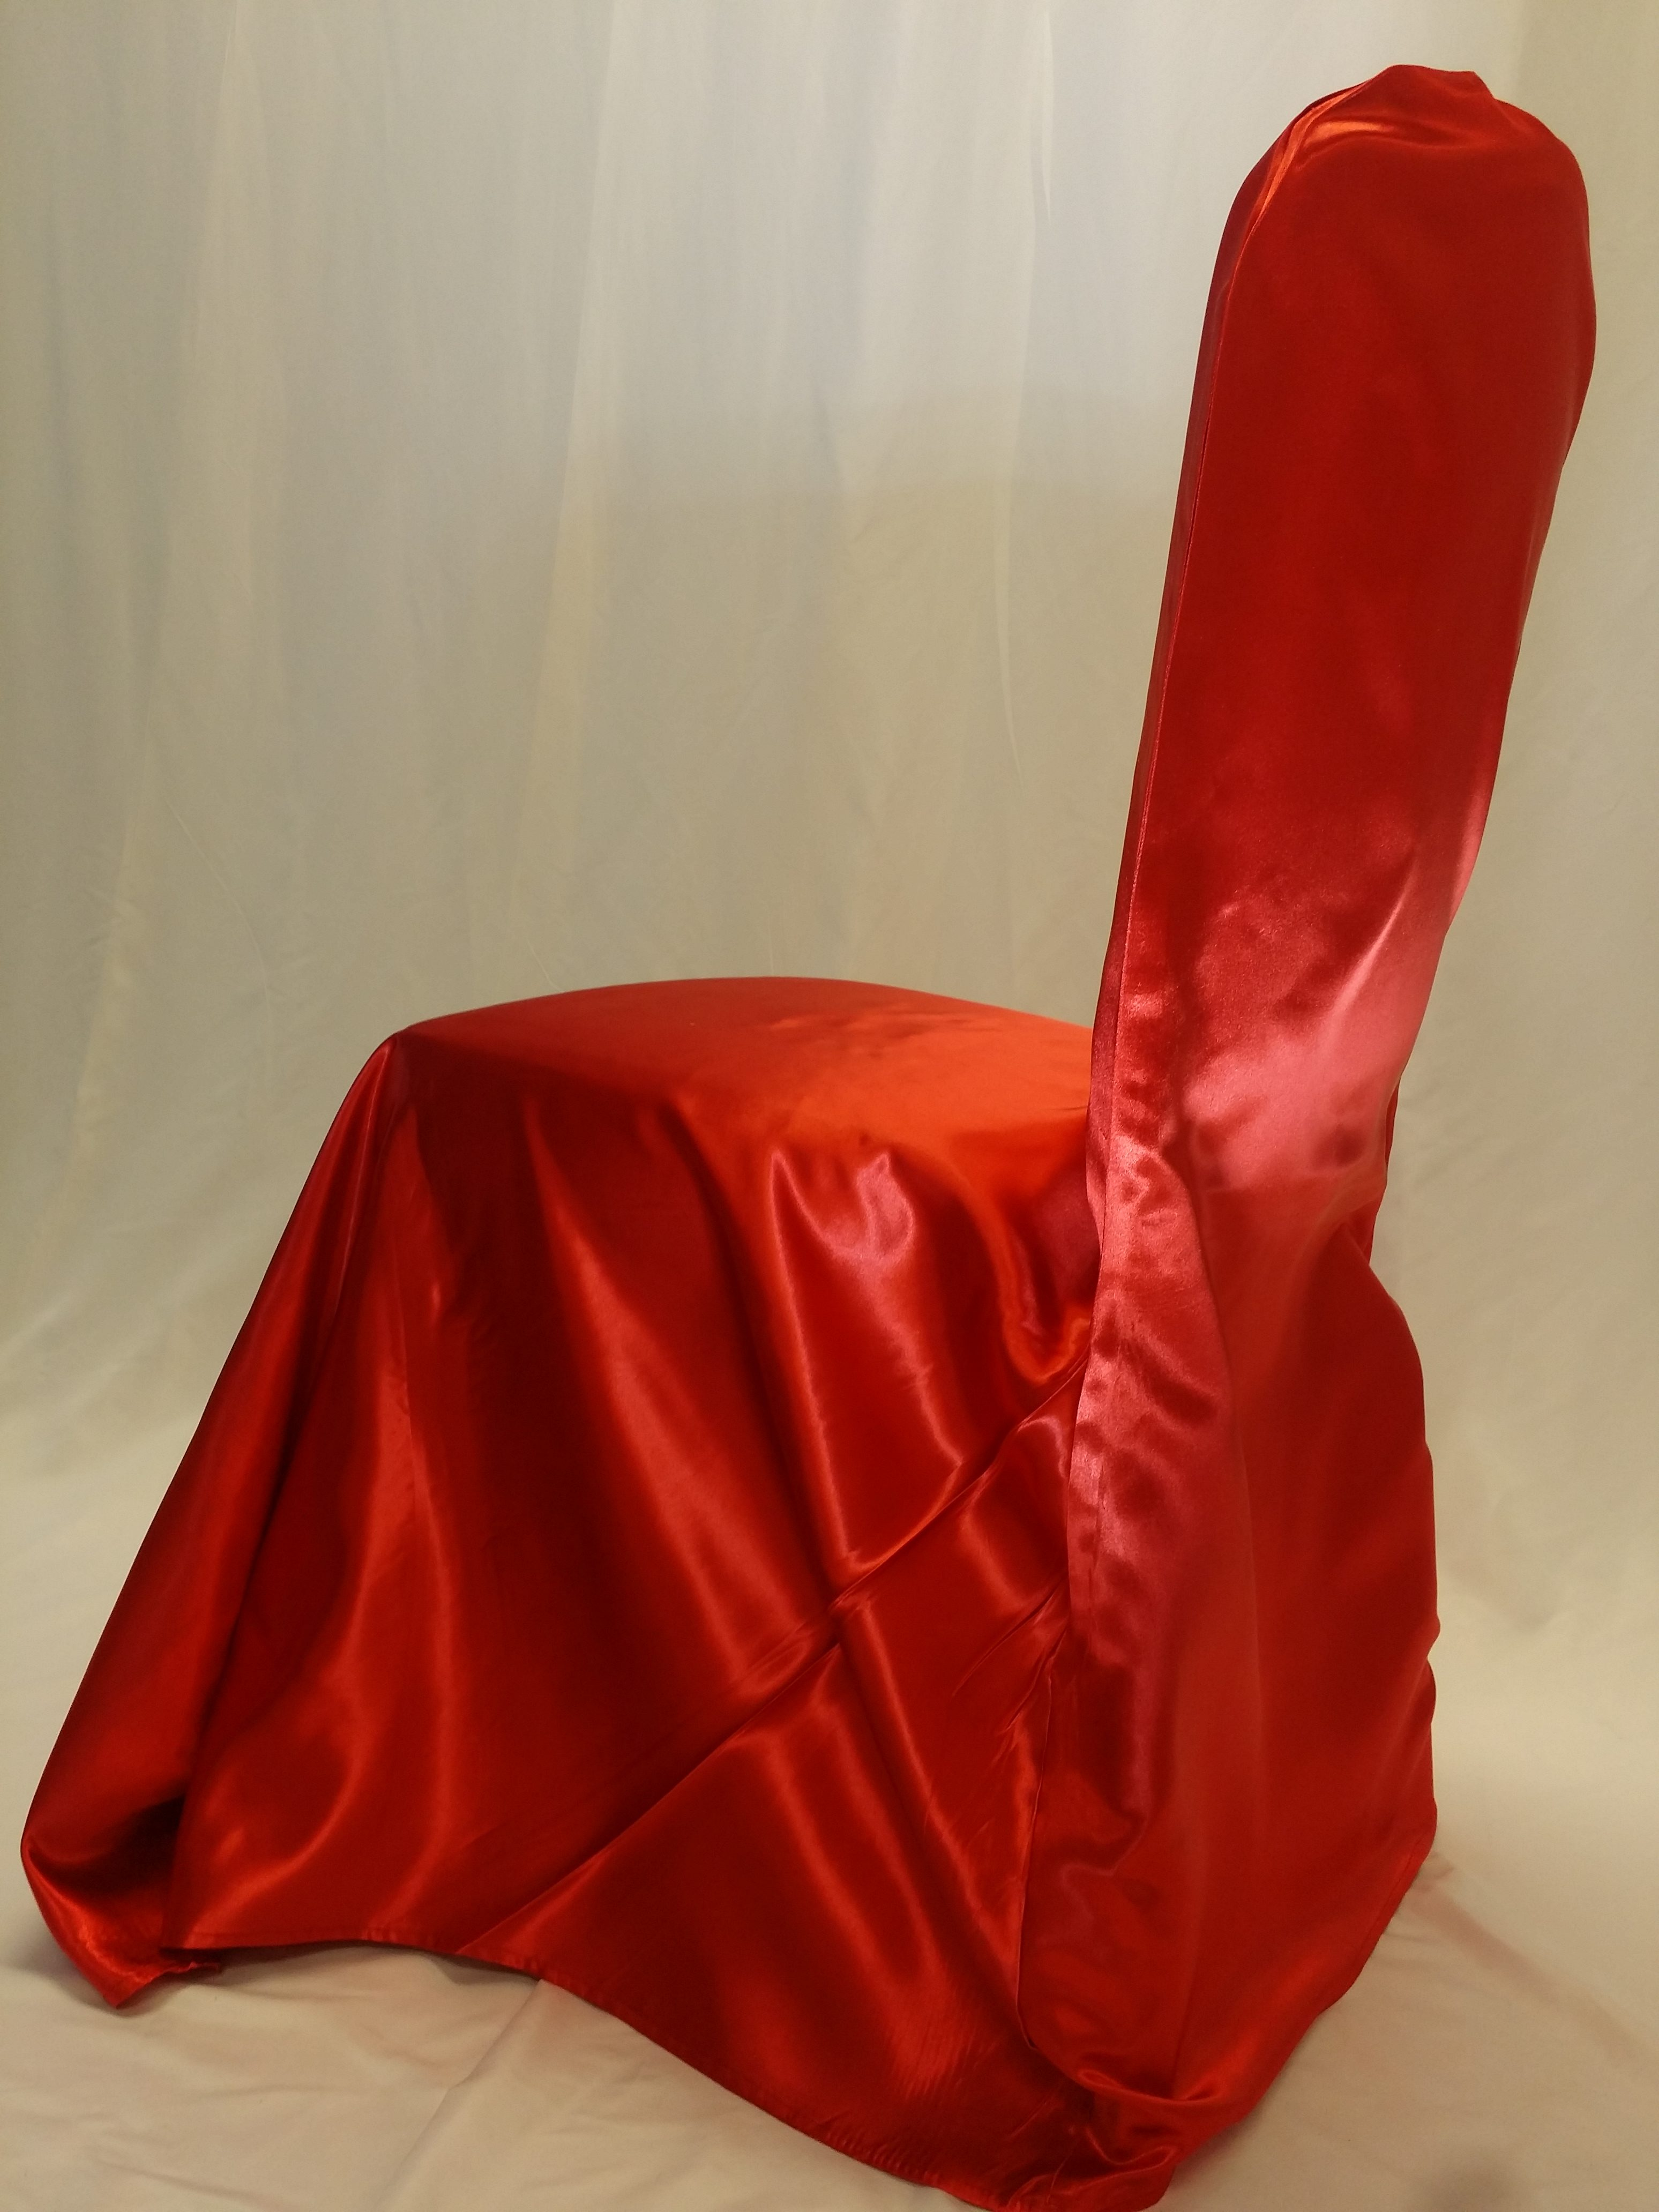 Cardinal Red Satin Chair Cover All Seasons Party Linen